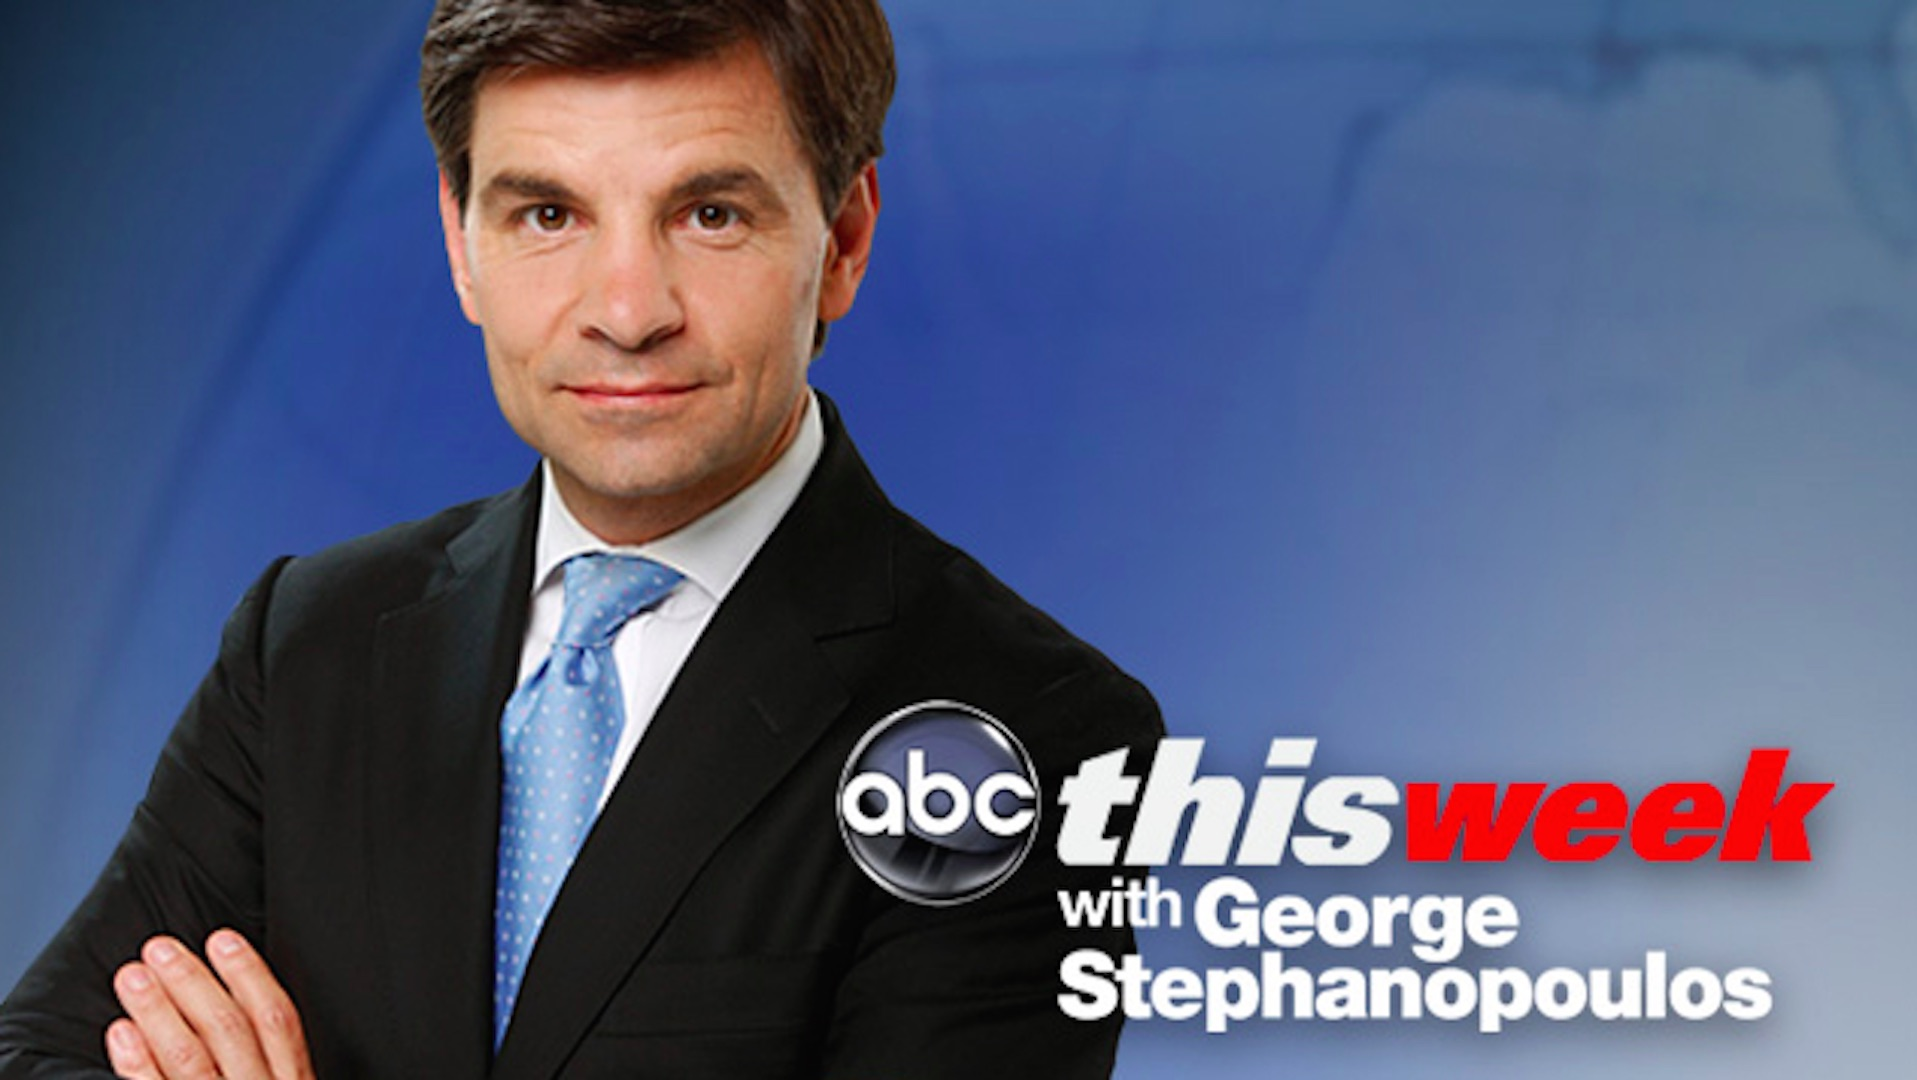 george stephanopoulos clinton